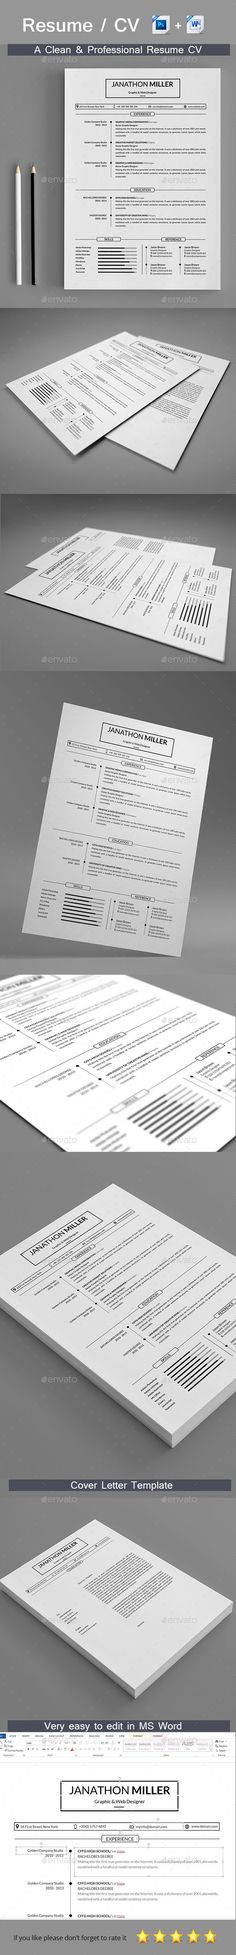 Free Resume Template businesscards Pinterest Free resume - windows resume templates